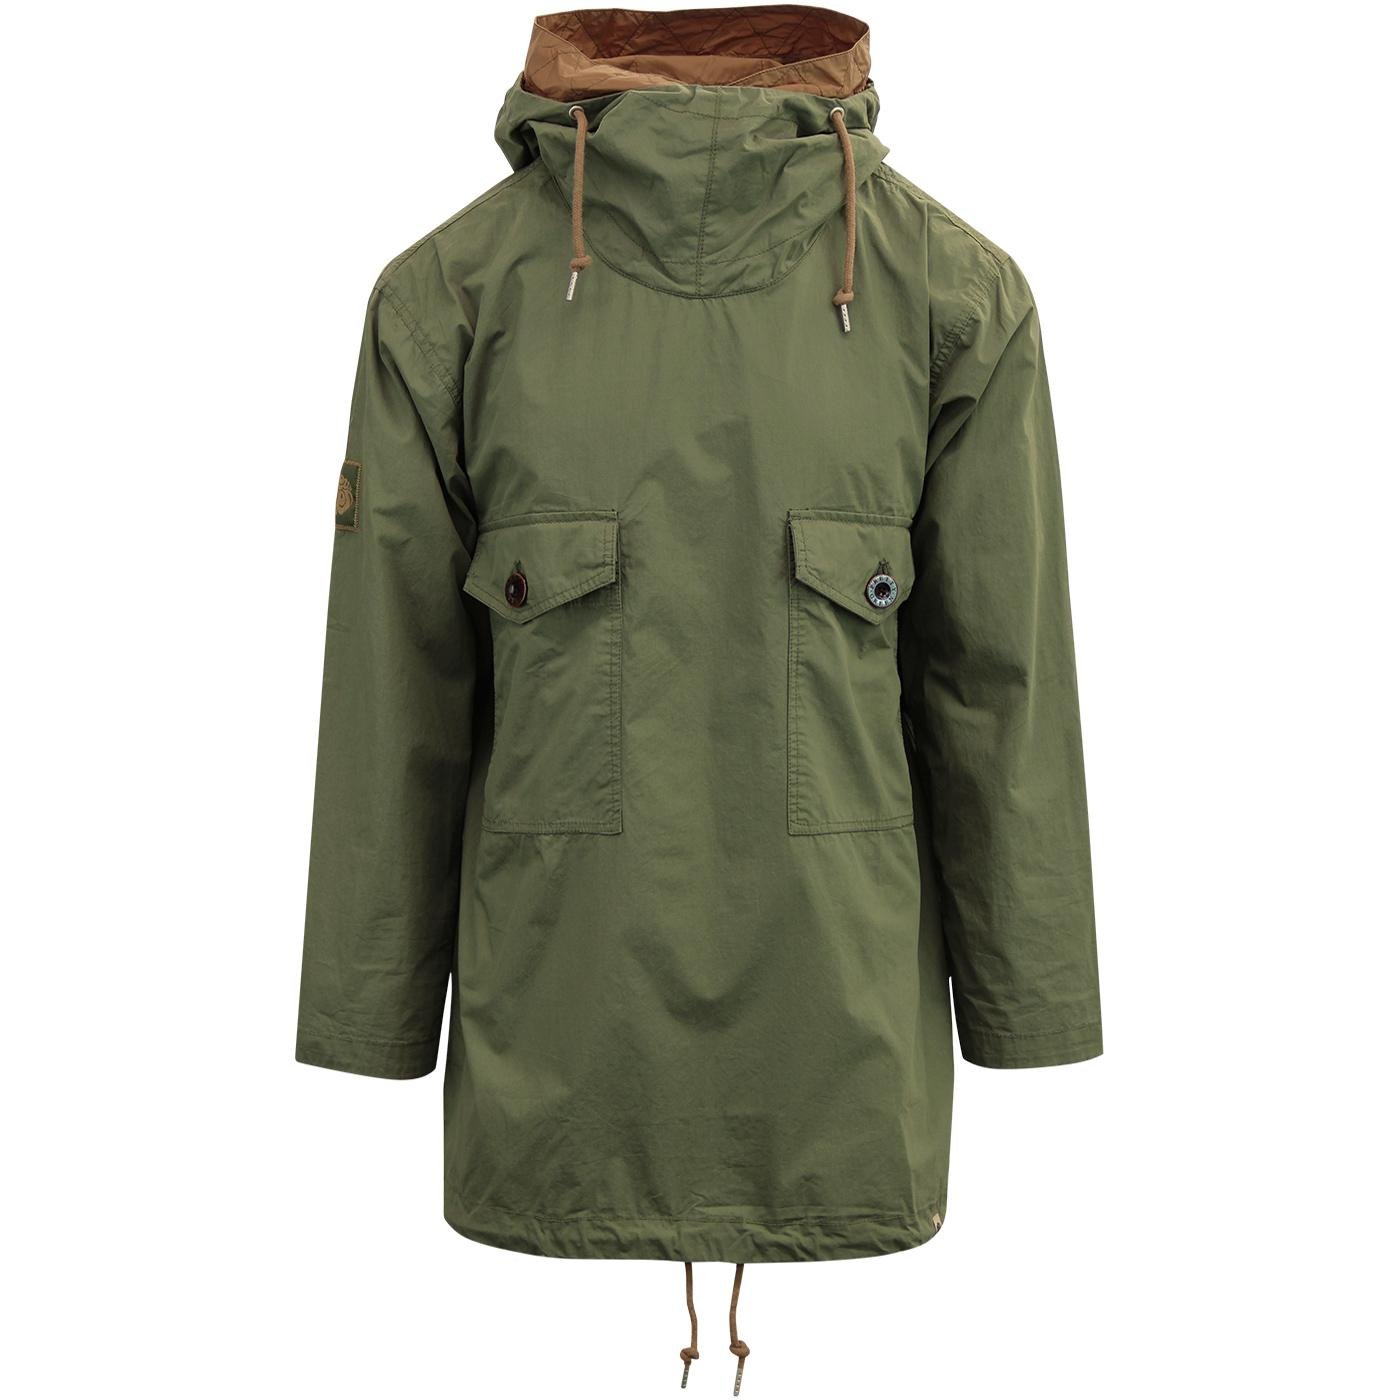 PRETTY GREEN Indie Two Pocket Overhead Jacket G